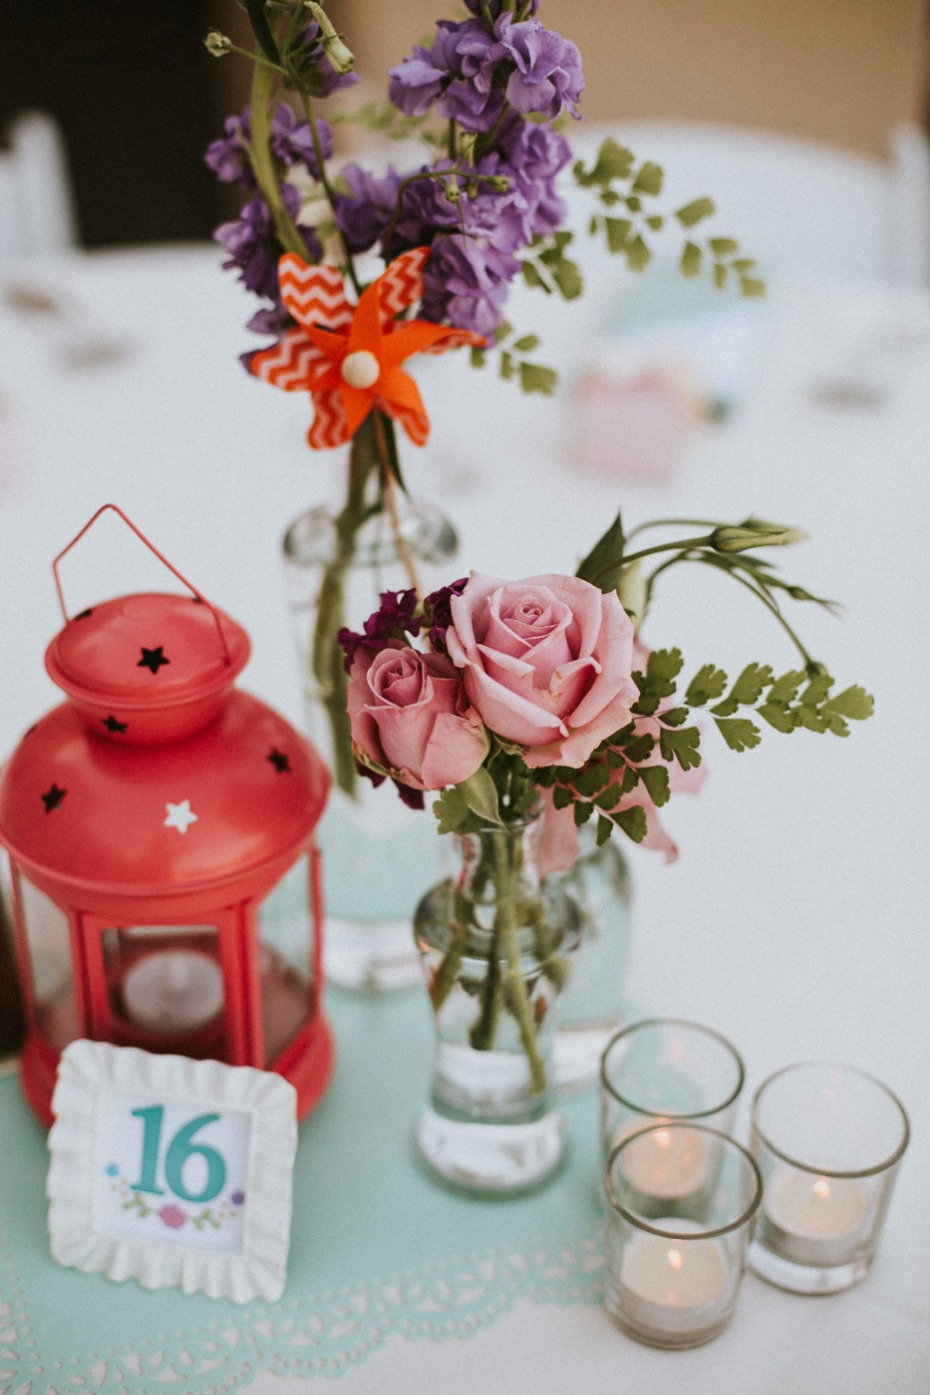 Cute eclectic centerpiece